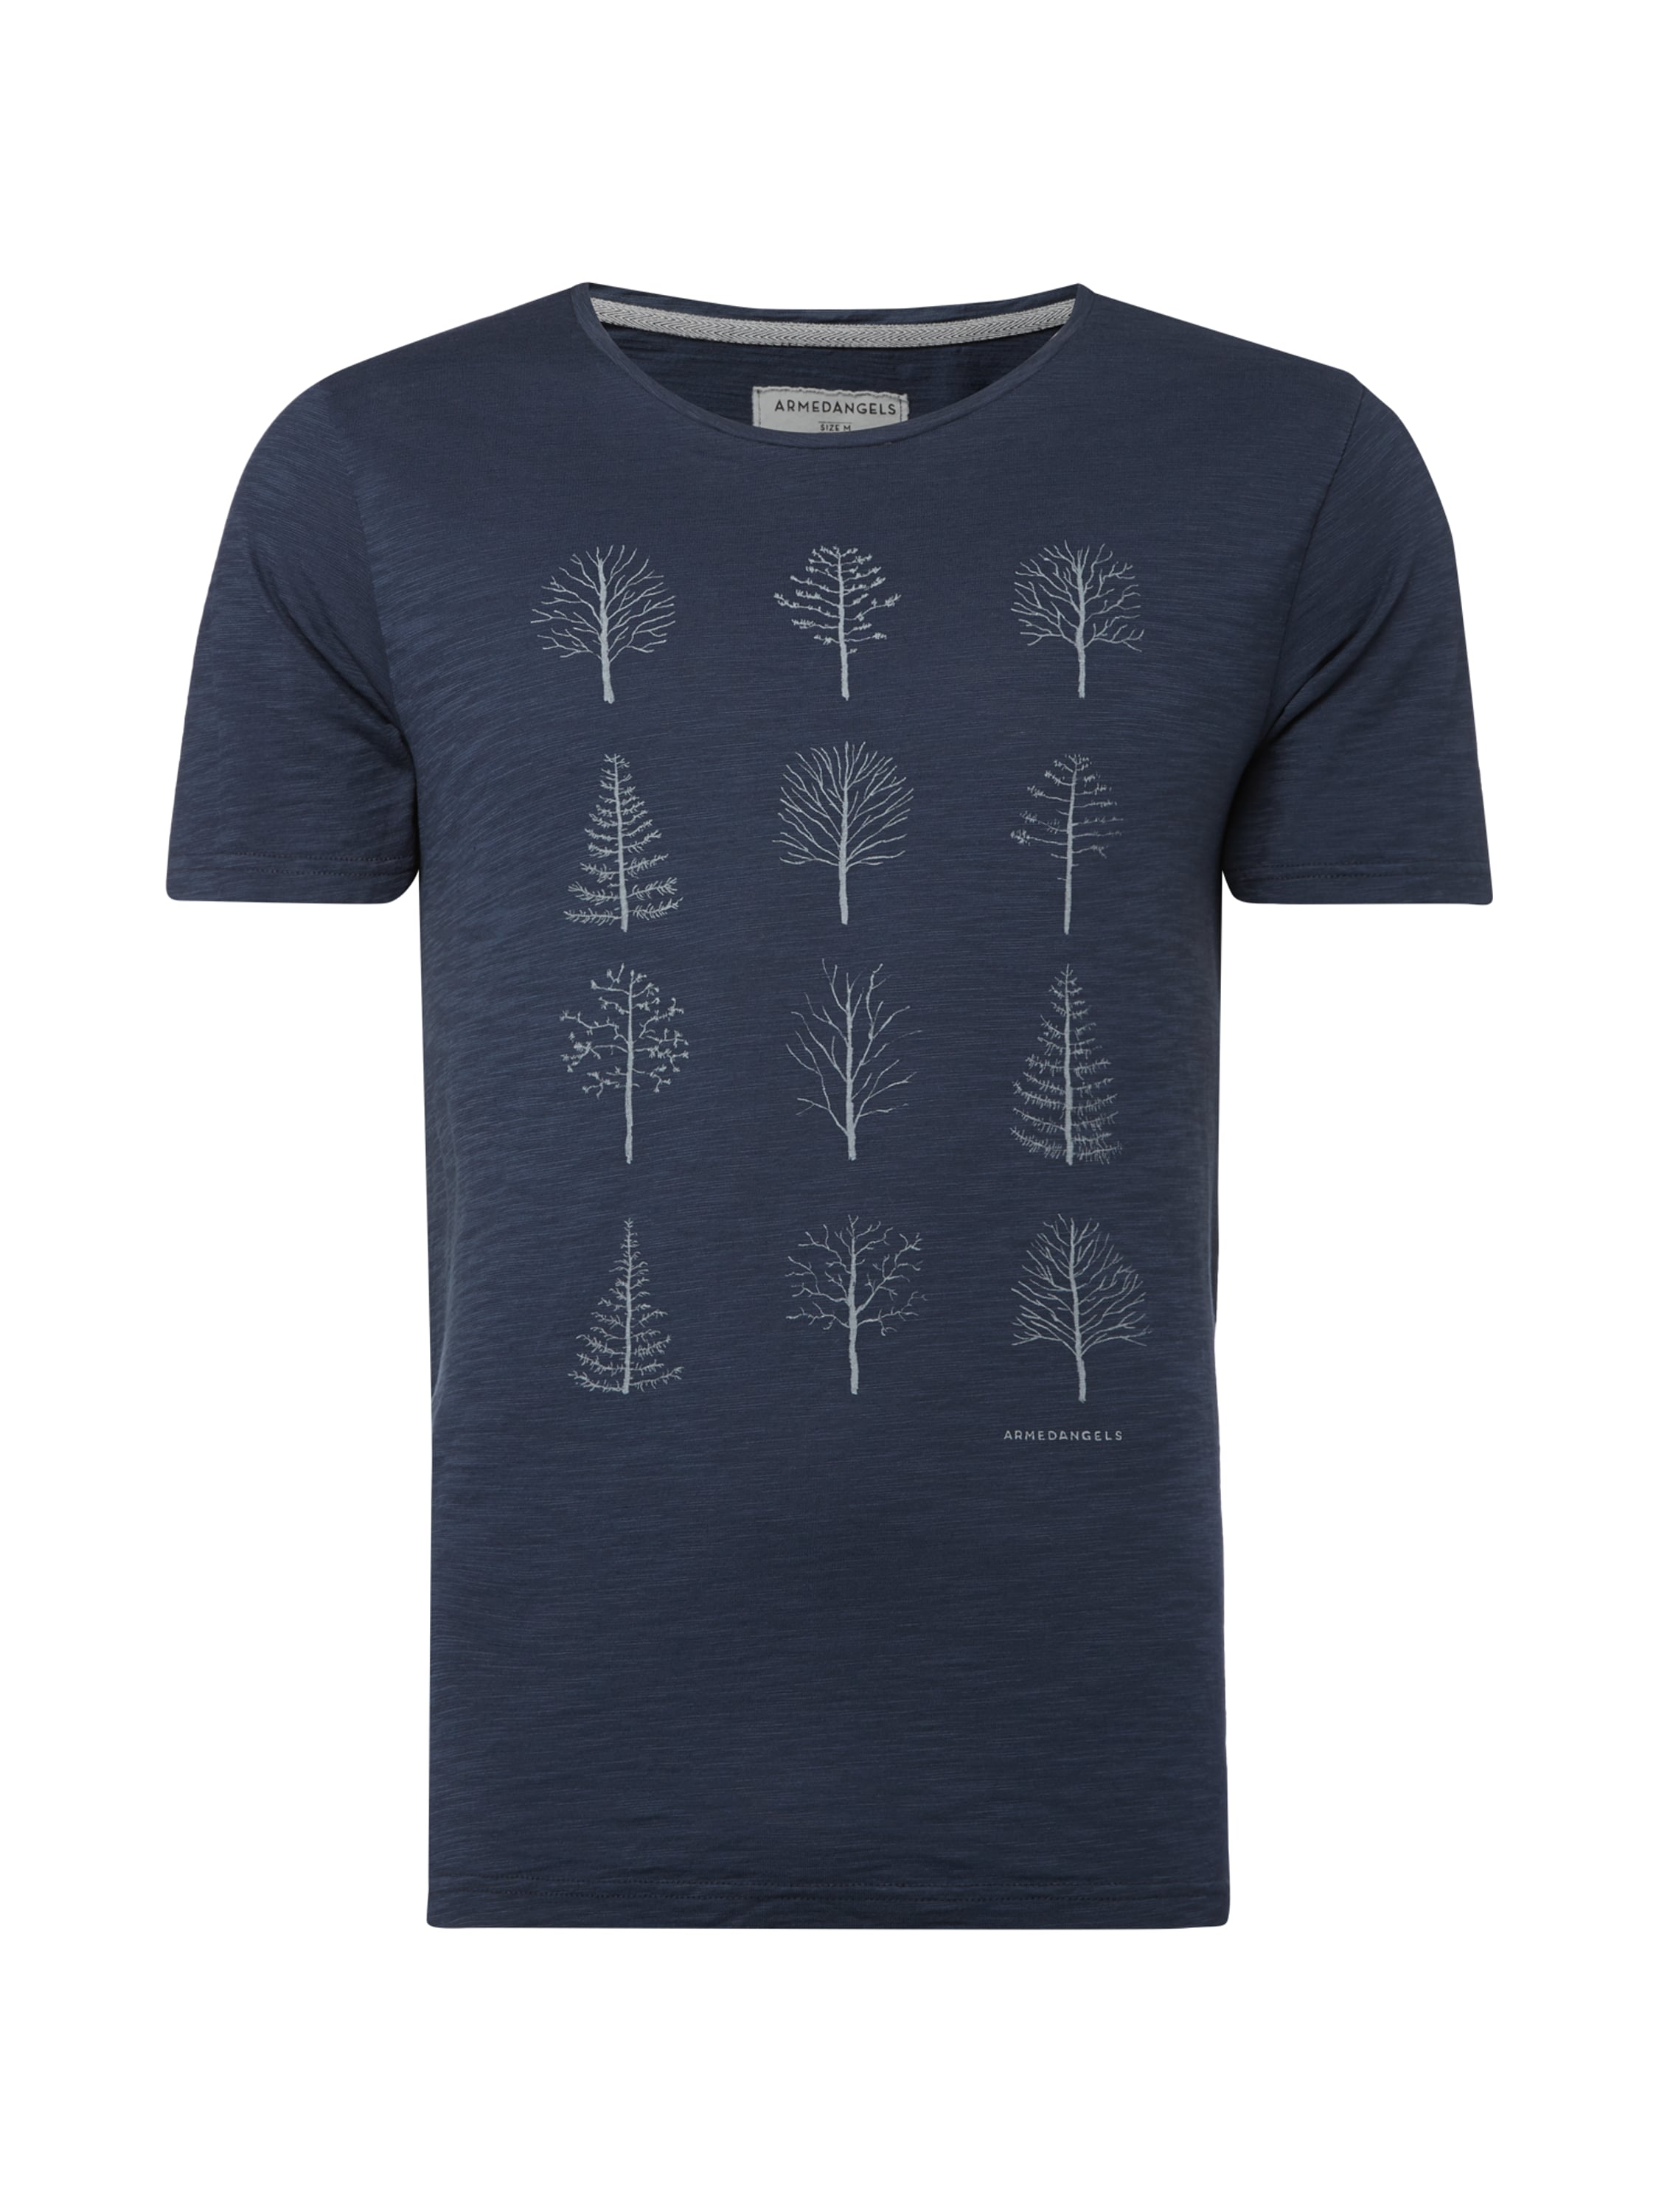 armedangels t shirt mit baum prints in blau t rkis. Black Bedroom Furniture Sets. Home Design Ideas